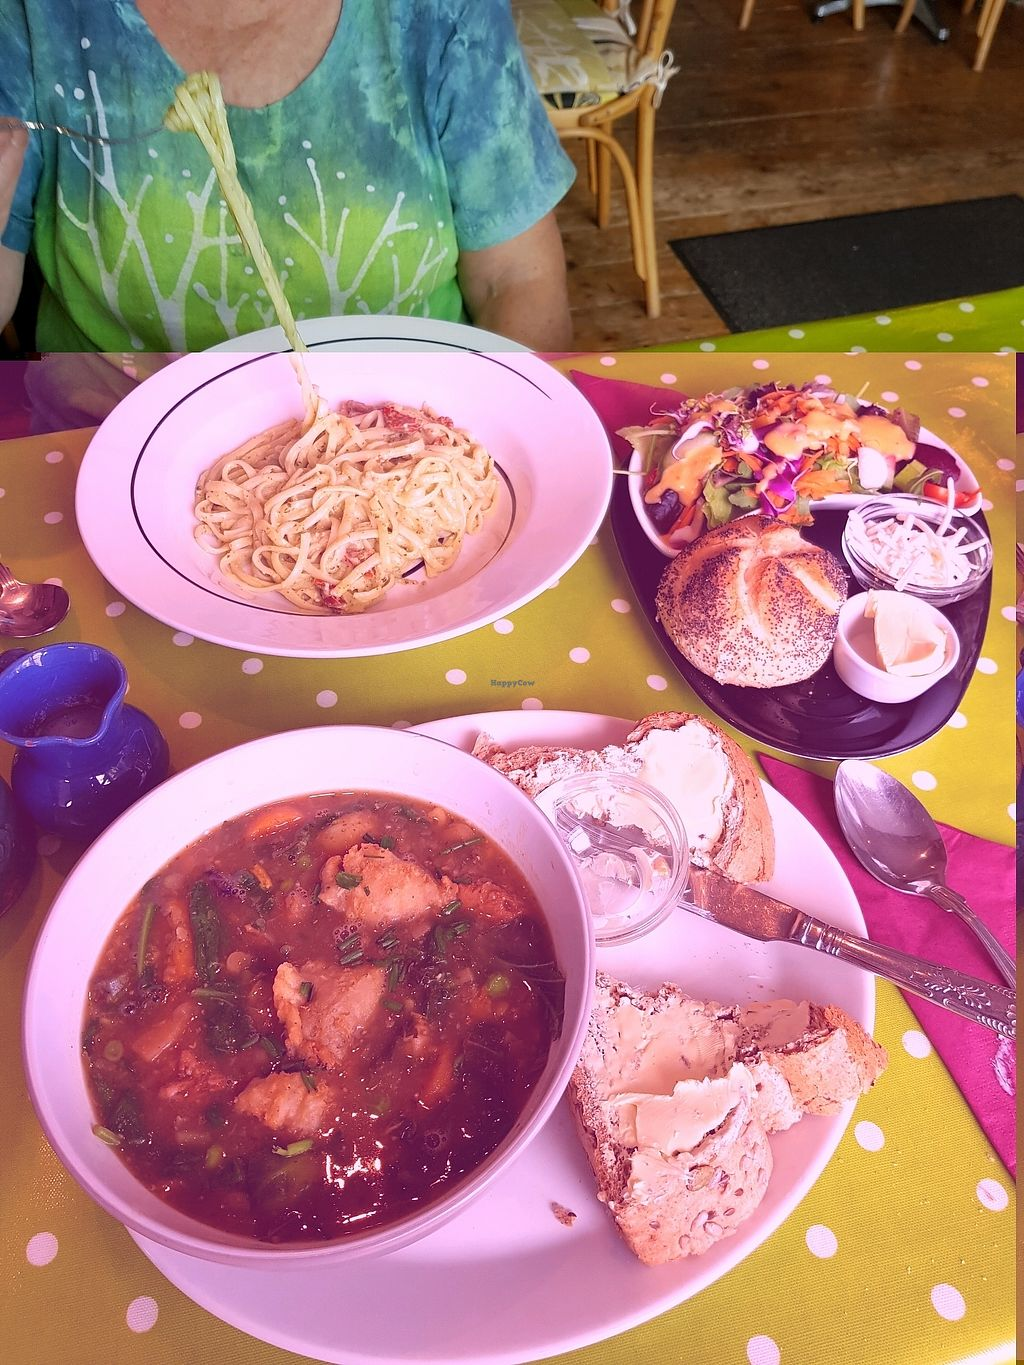 """Photo of The Terrace Arts Cafe - Artannapola  by <a href=""""/members/profile/Chaizy"""">Chaizy</a> <br/>Vegan stew & dumplings, Tagliatelle and salad <br/> September 7, 2017  - <a href='/contact/abuse/image/15071/301705'>Report</a>"""